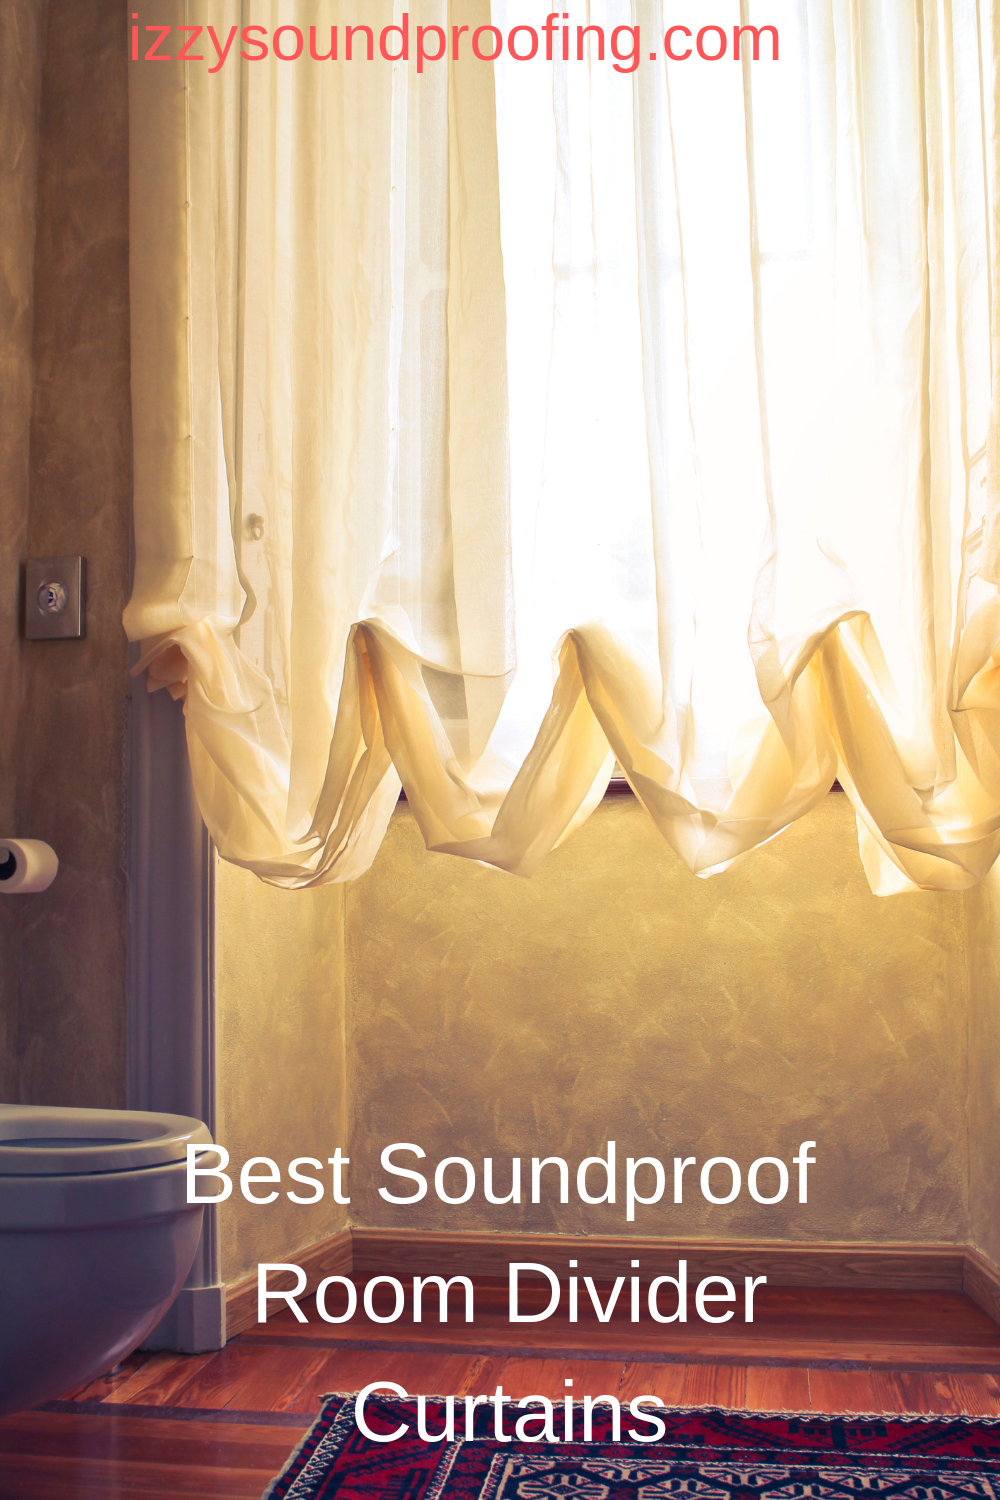 I Ll Walk You Through The Best Soundproof Room Divider Curtains